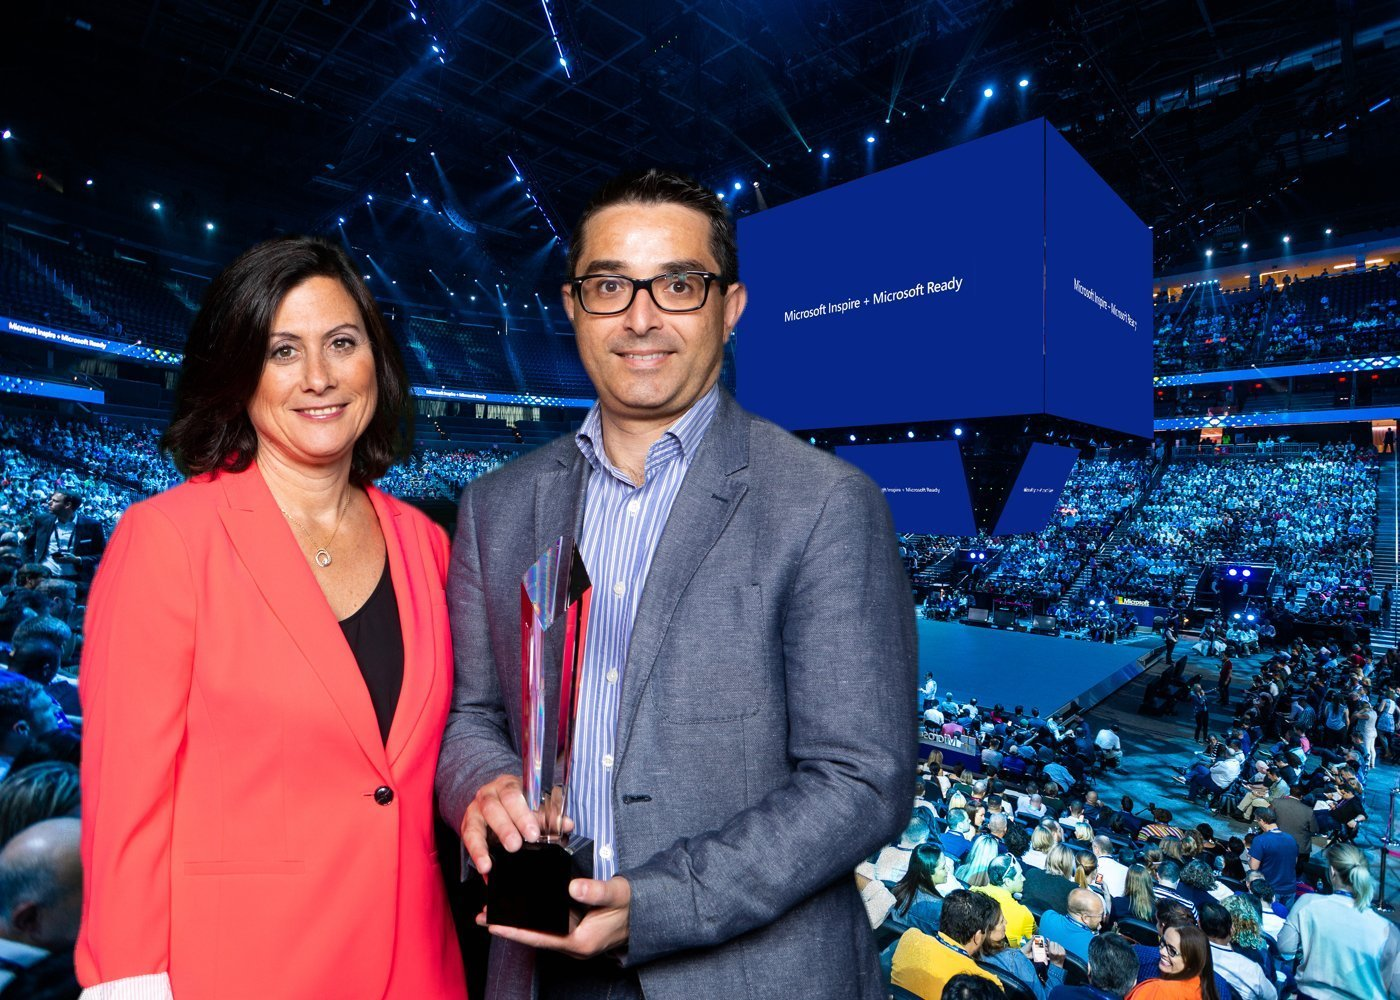 ICT Solutions awarded Microsoft Partner of the Year 2019